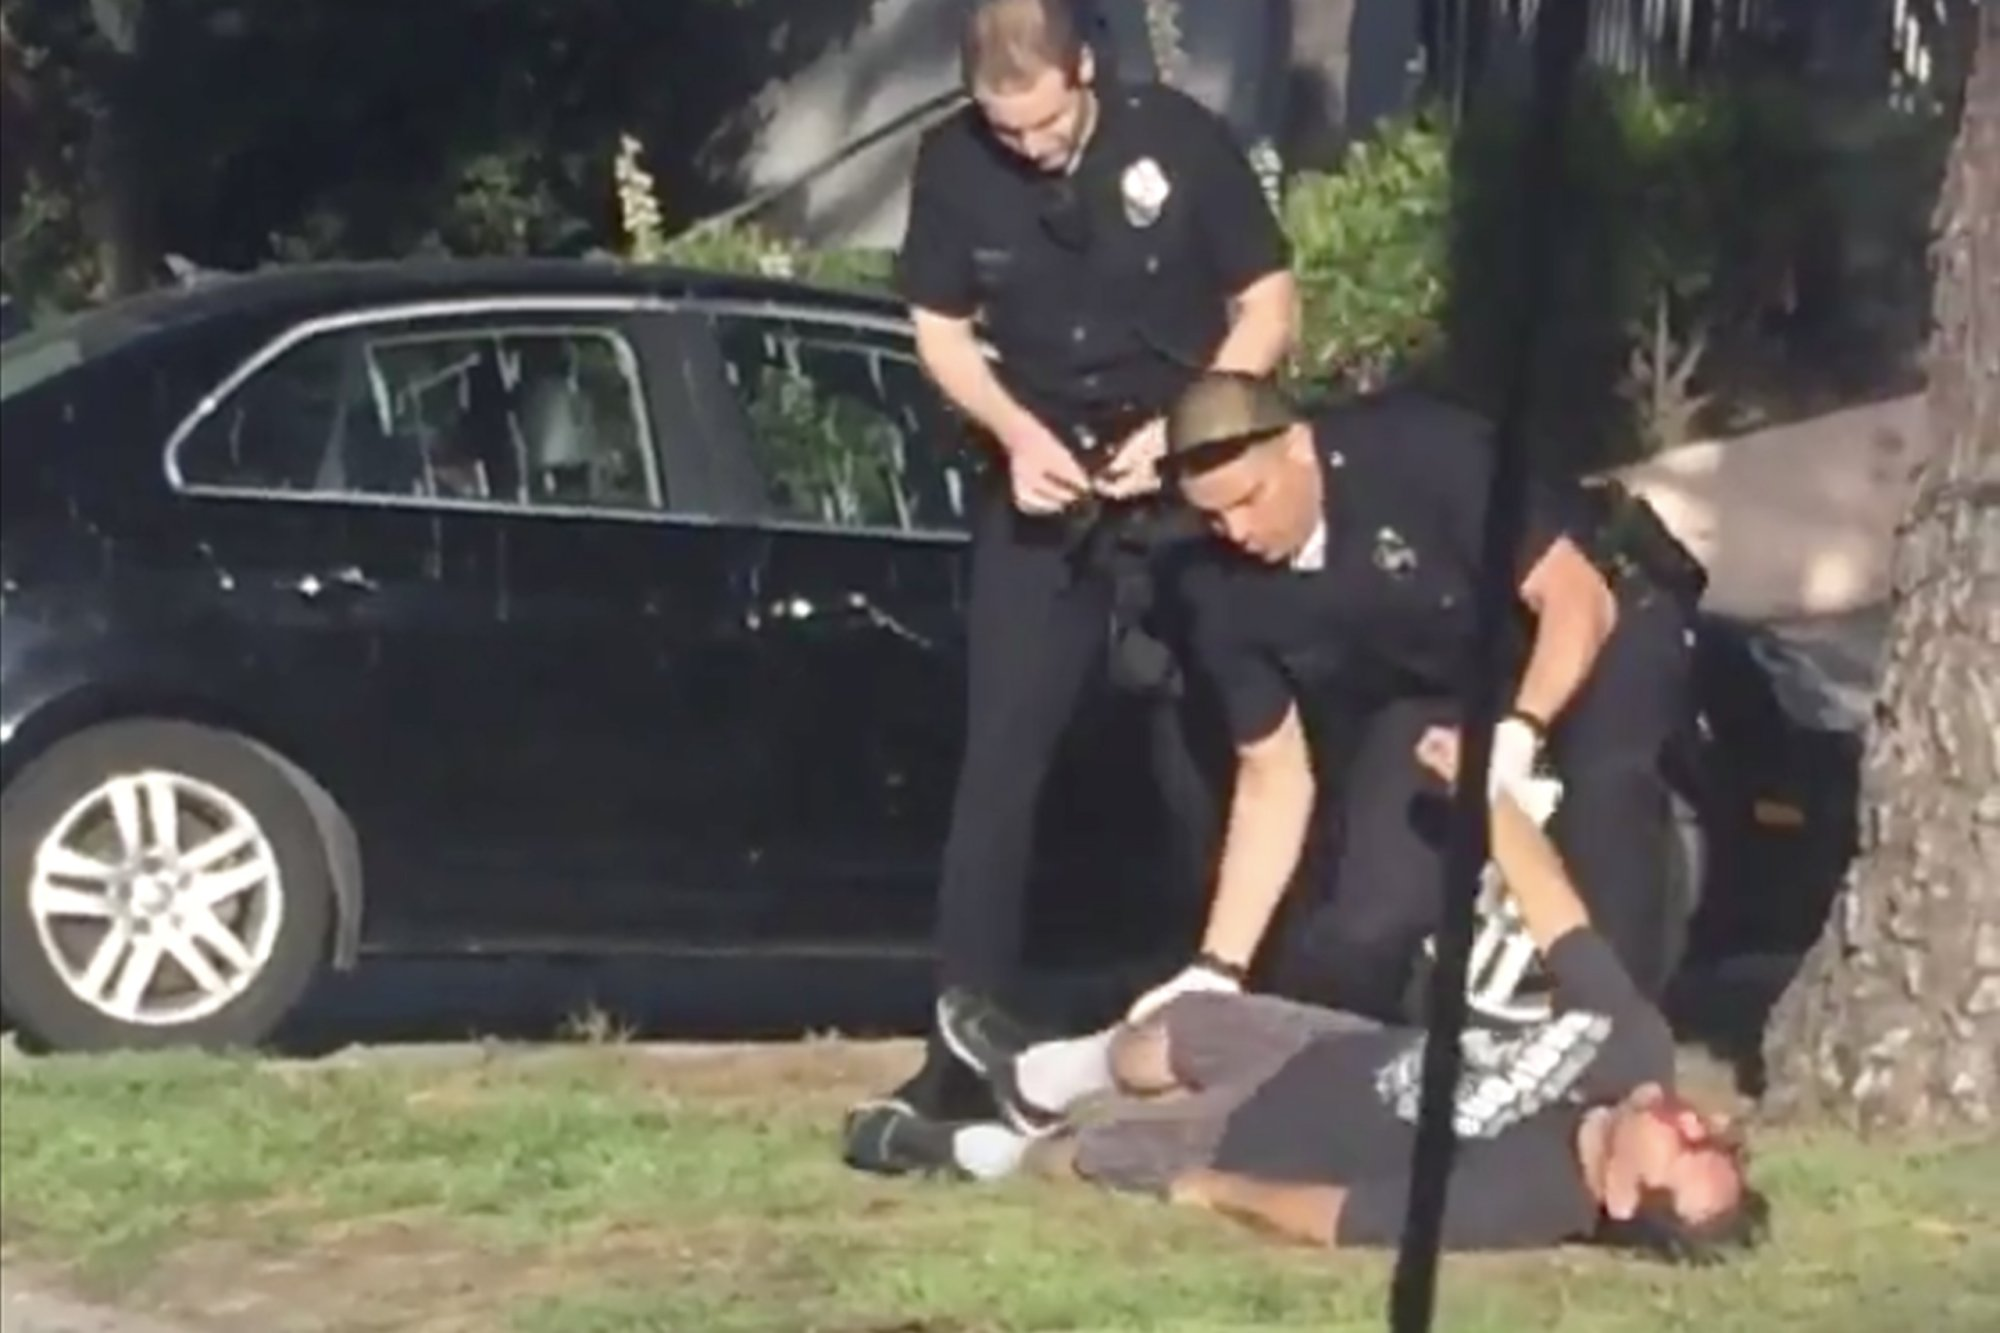 LAPD just shot unarmed man for holding a towel